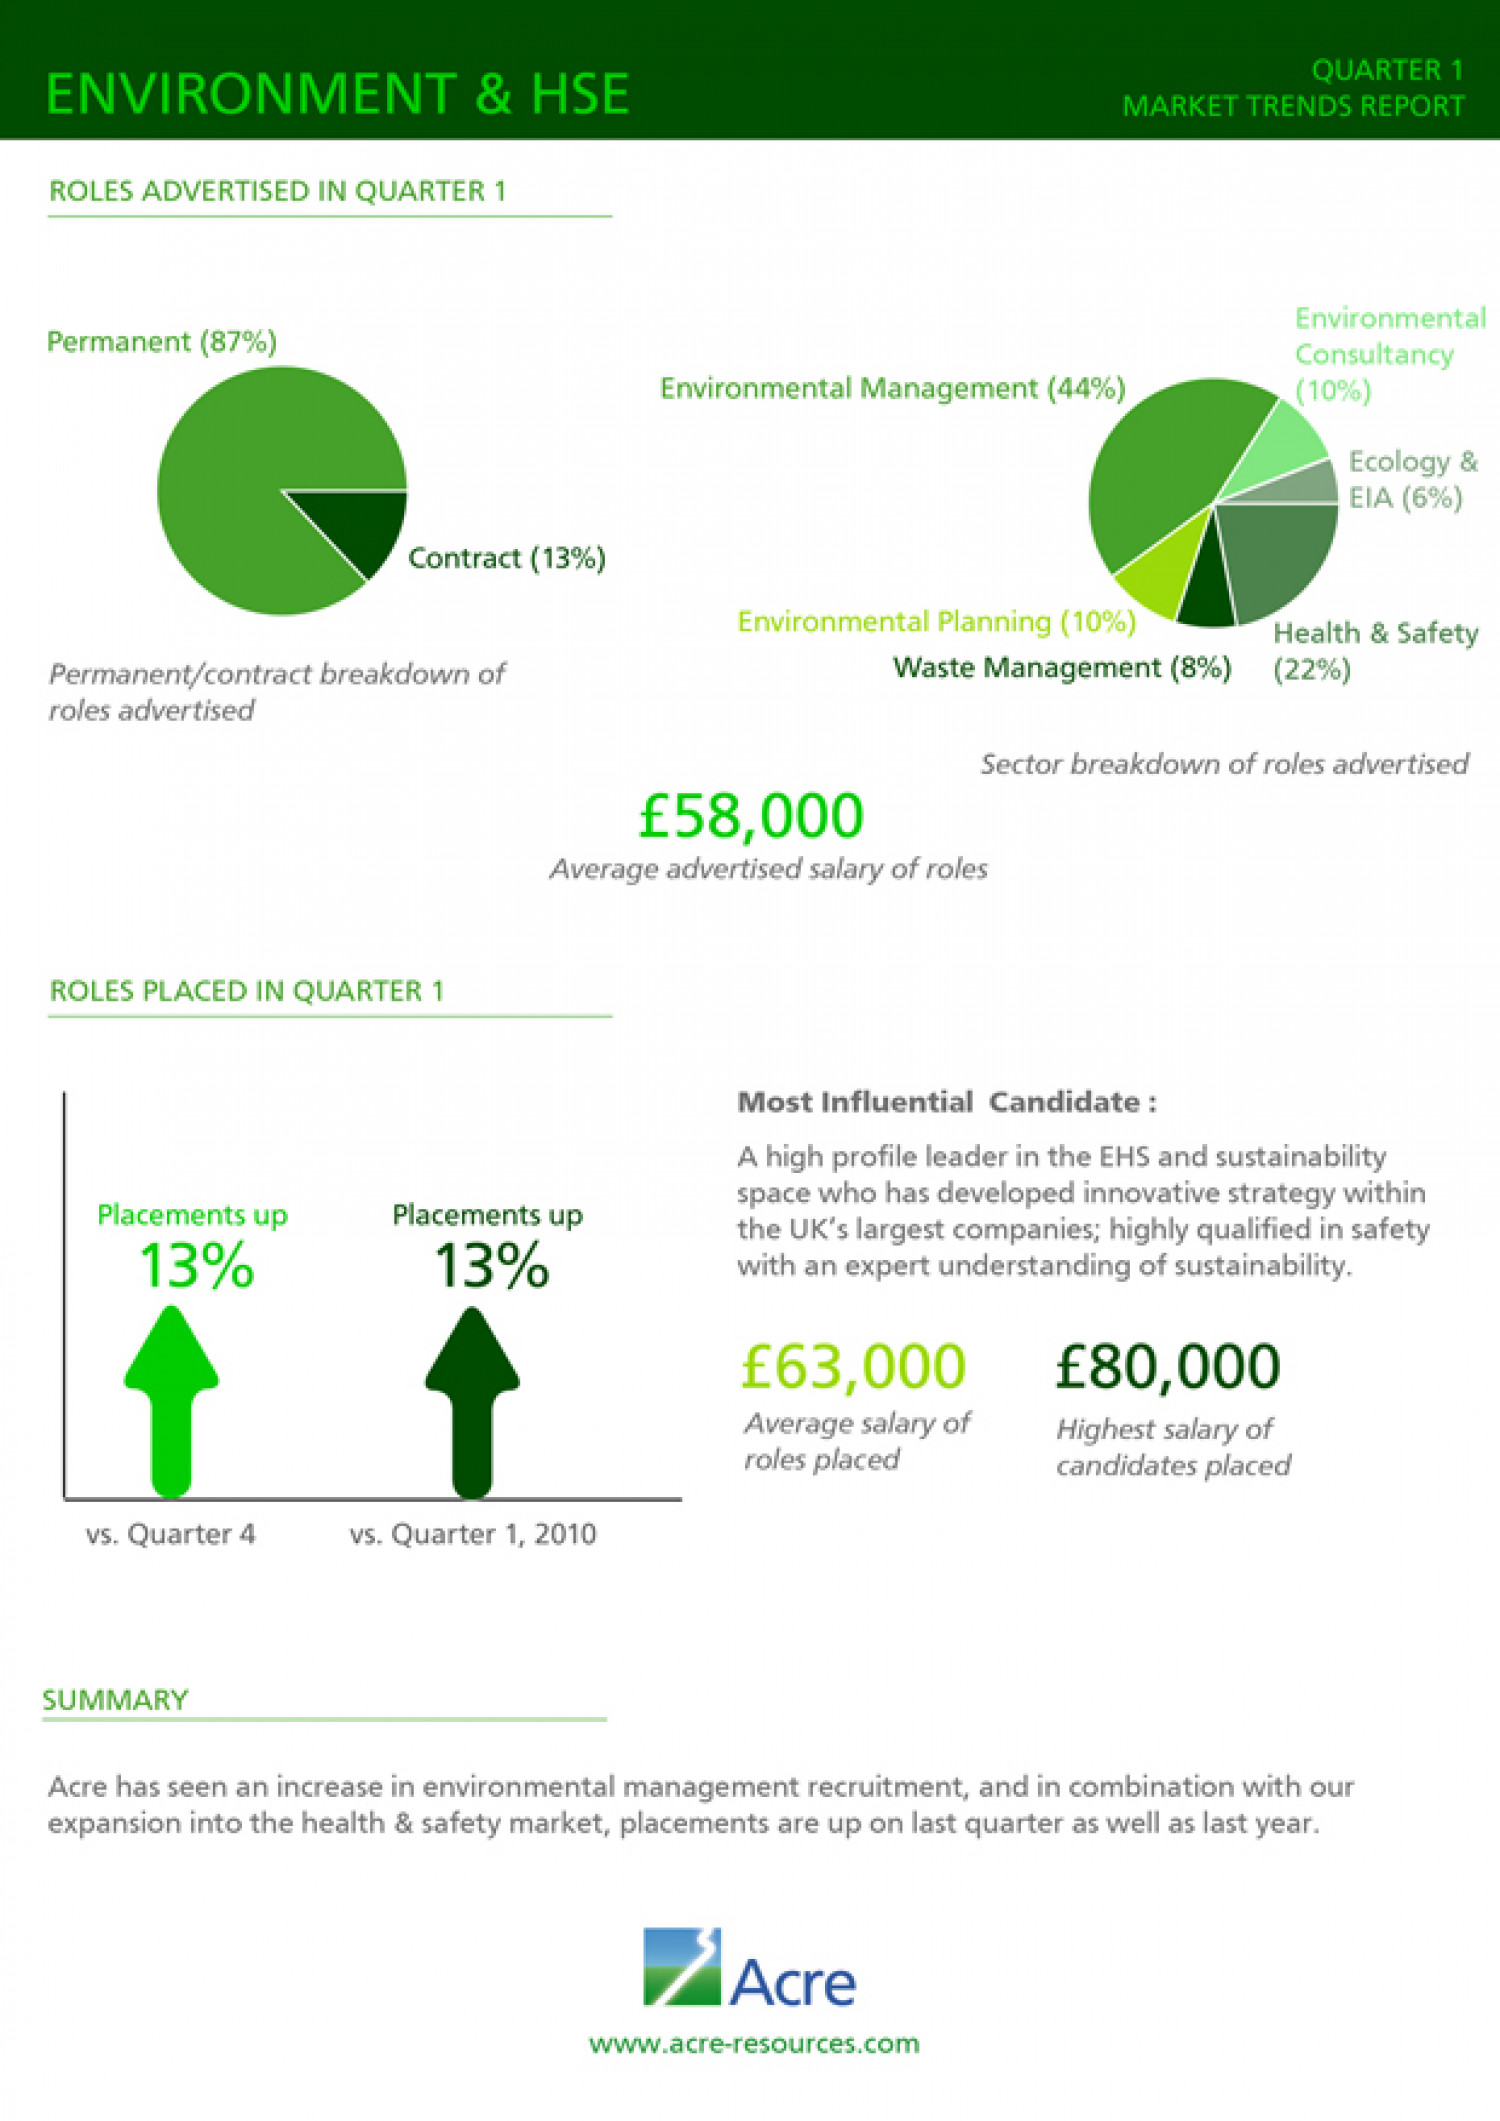 Environment & HSE Market Trends Report Infographic